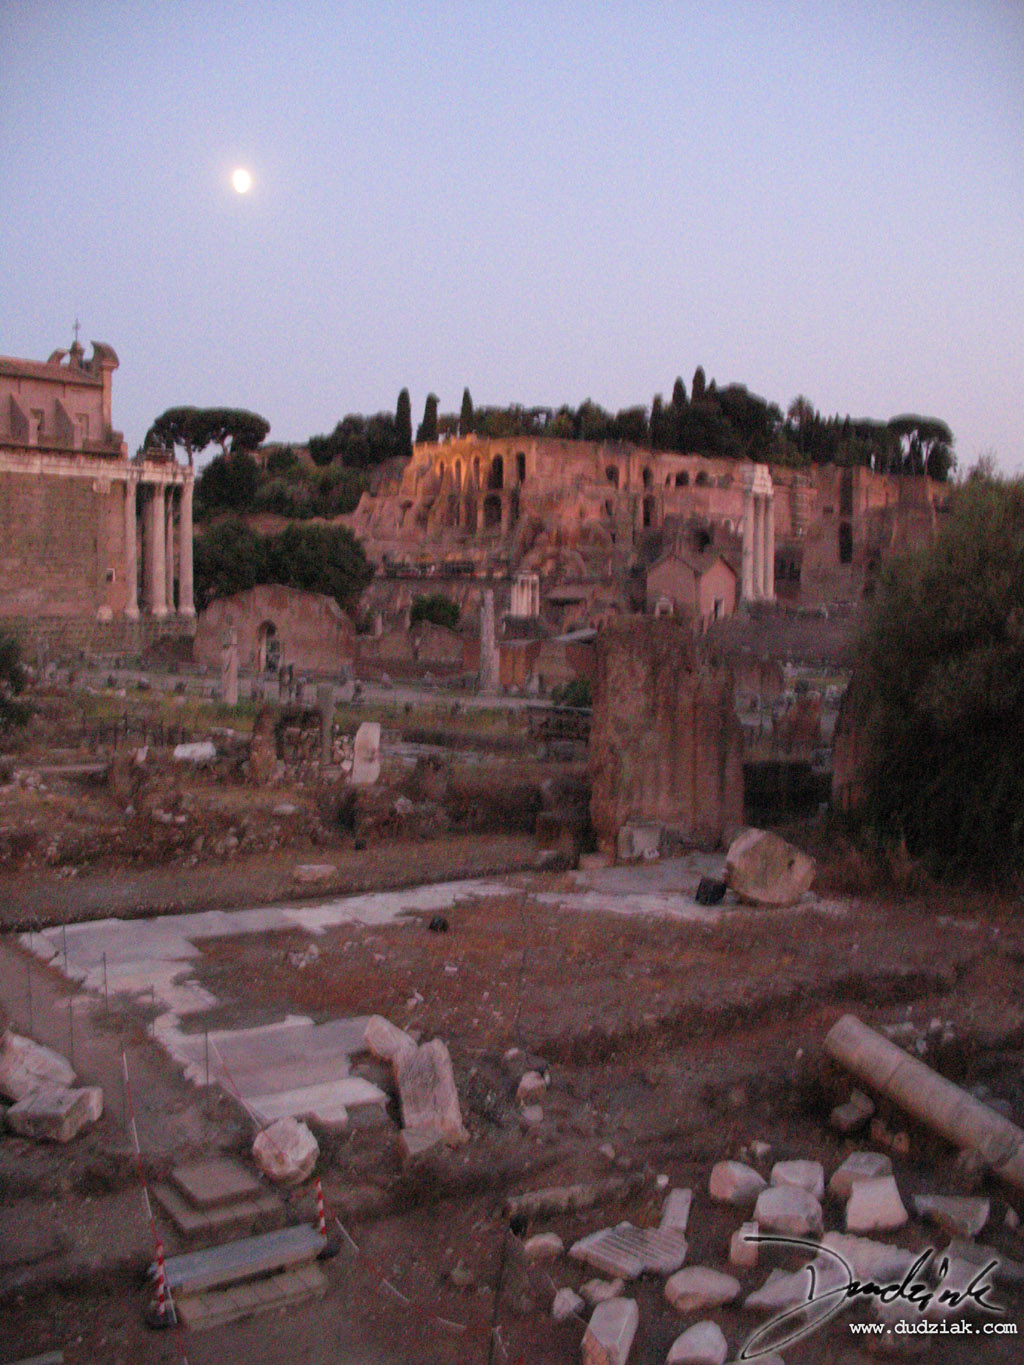 italy,  rome,  moonlight,  roman forum,  dusk